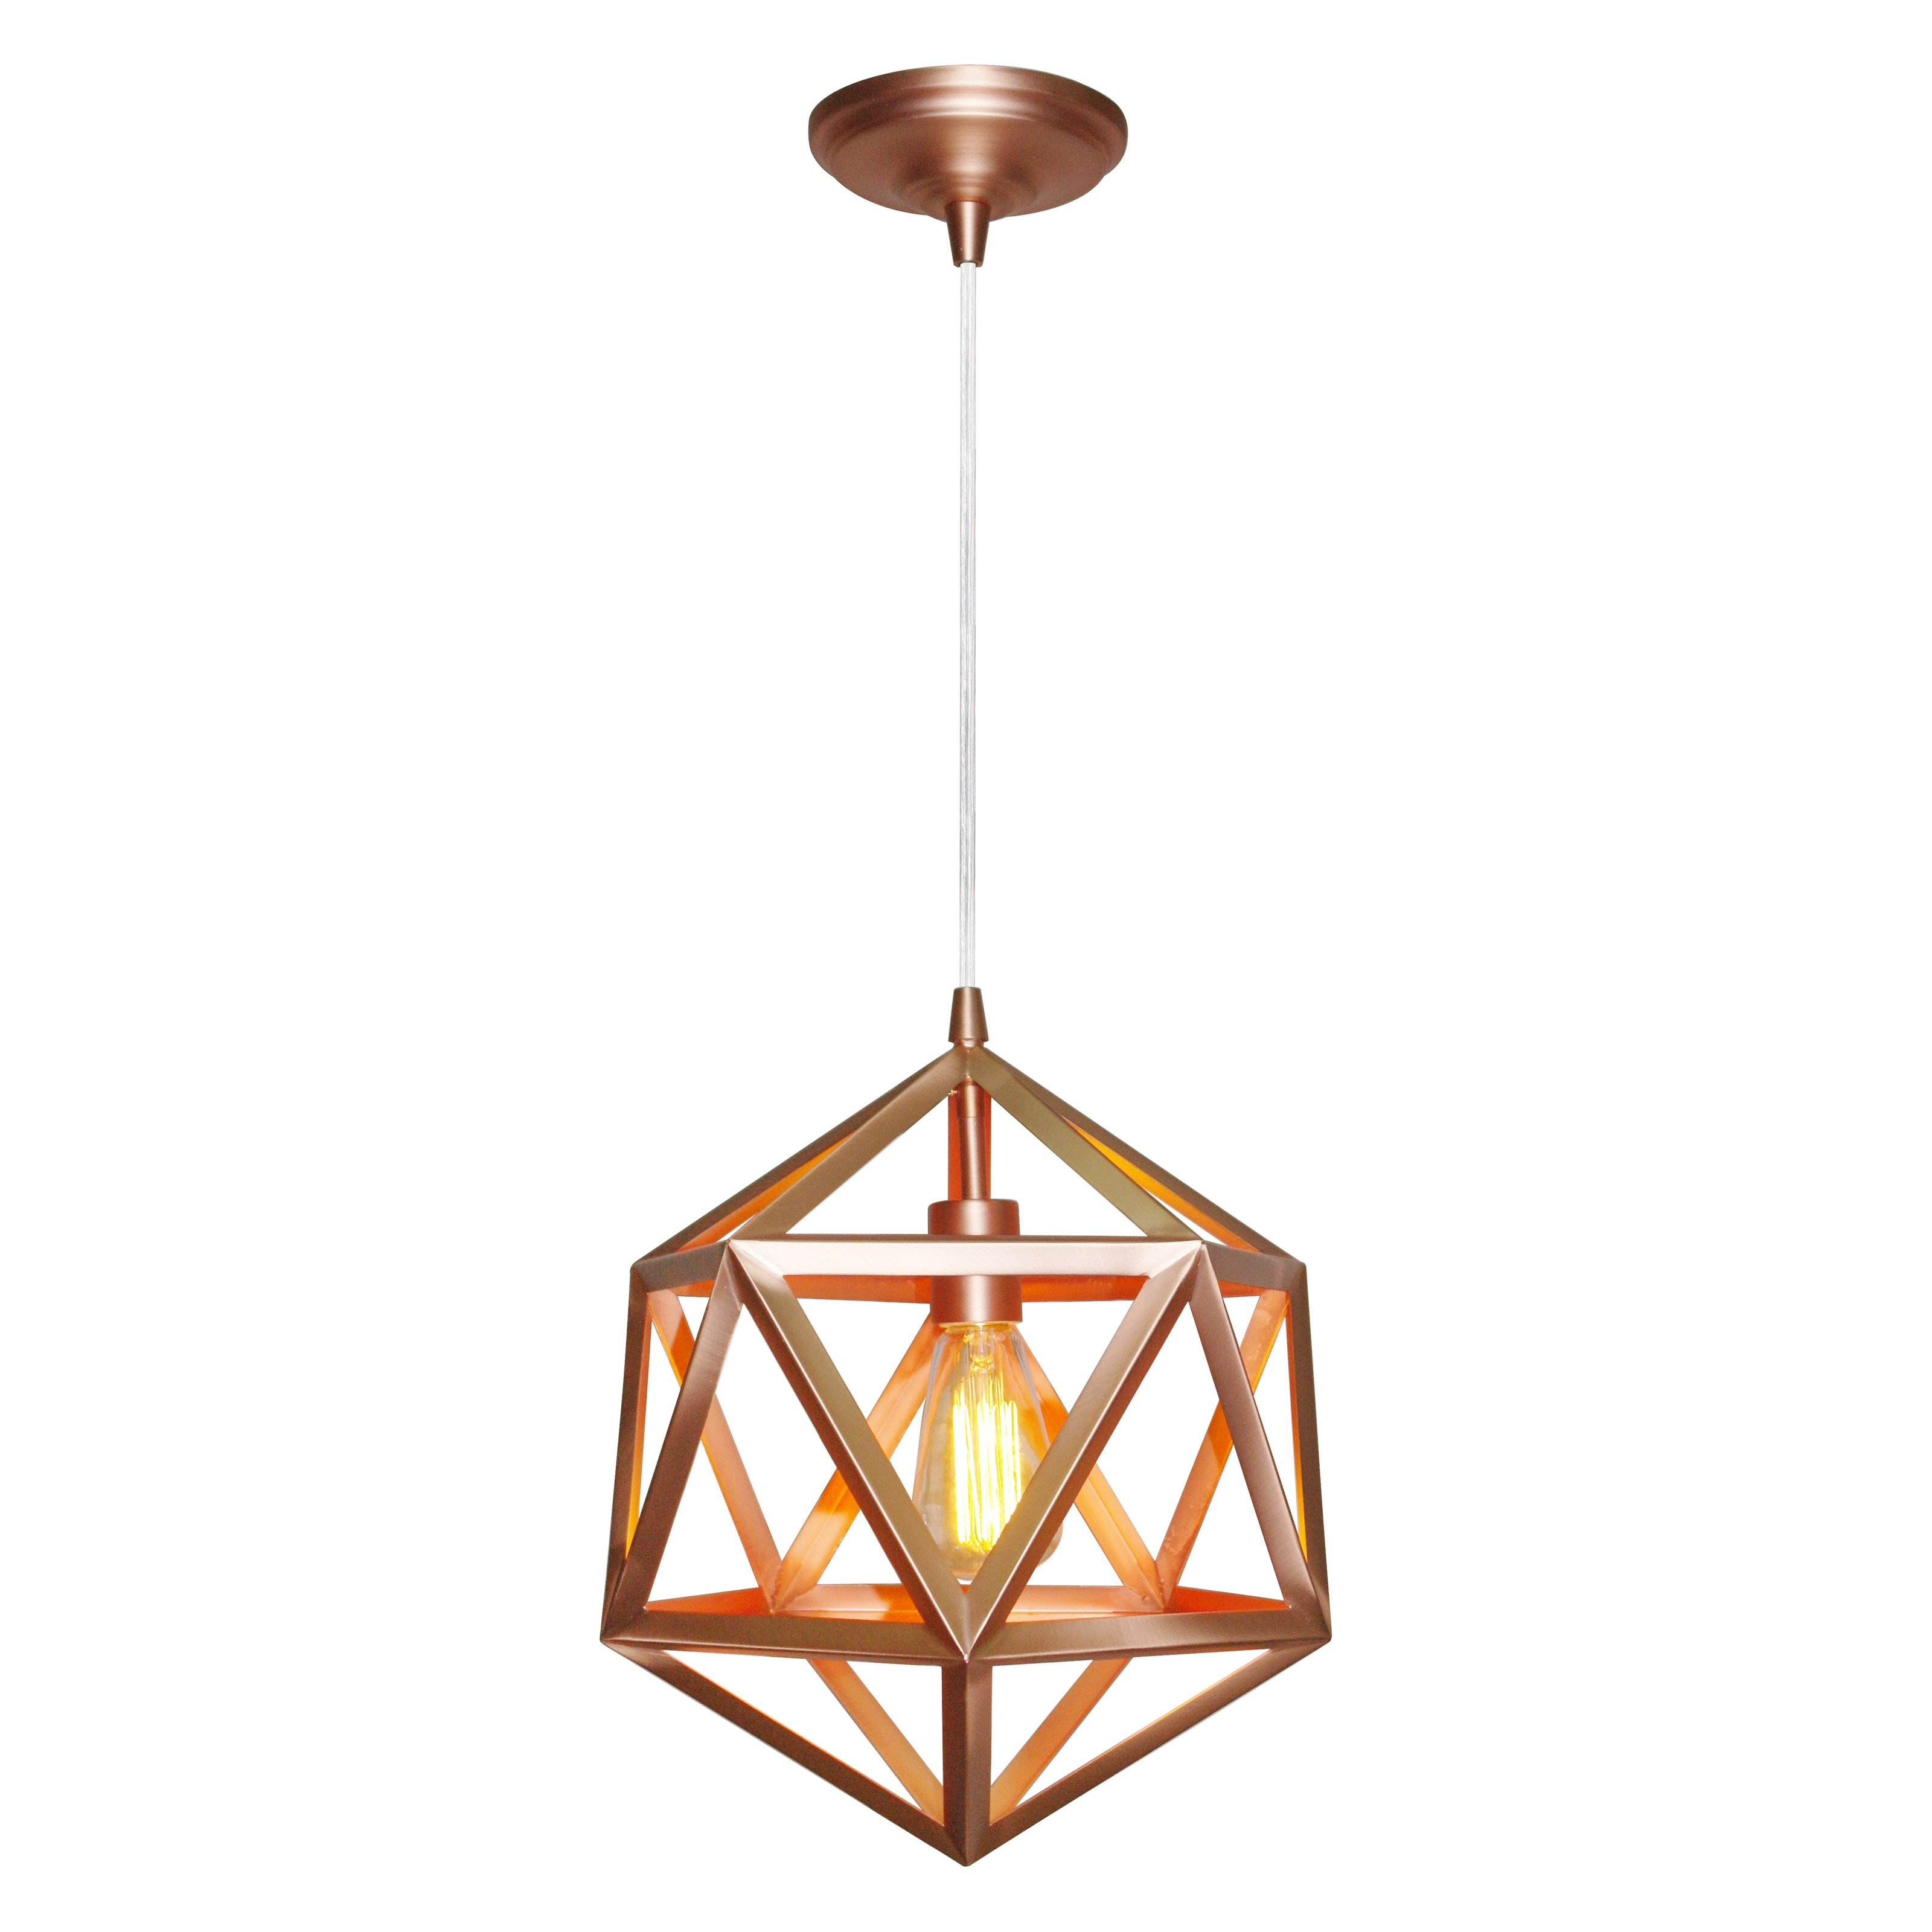 Worth Home Products Jada 0361 Pendant Light Ceiling Canopy For Kits On Kit Wiring